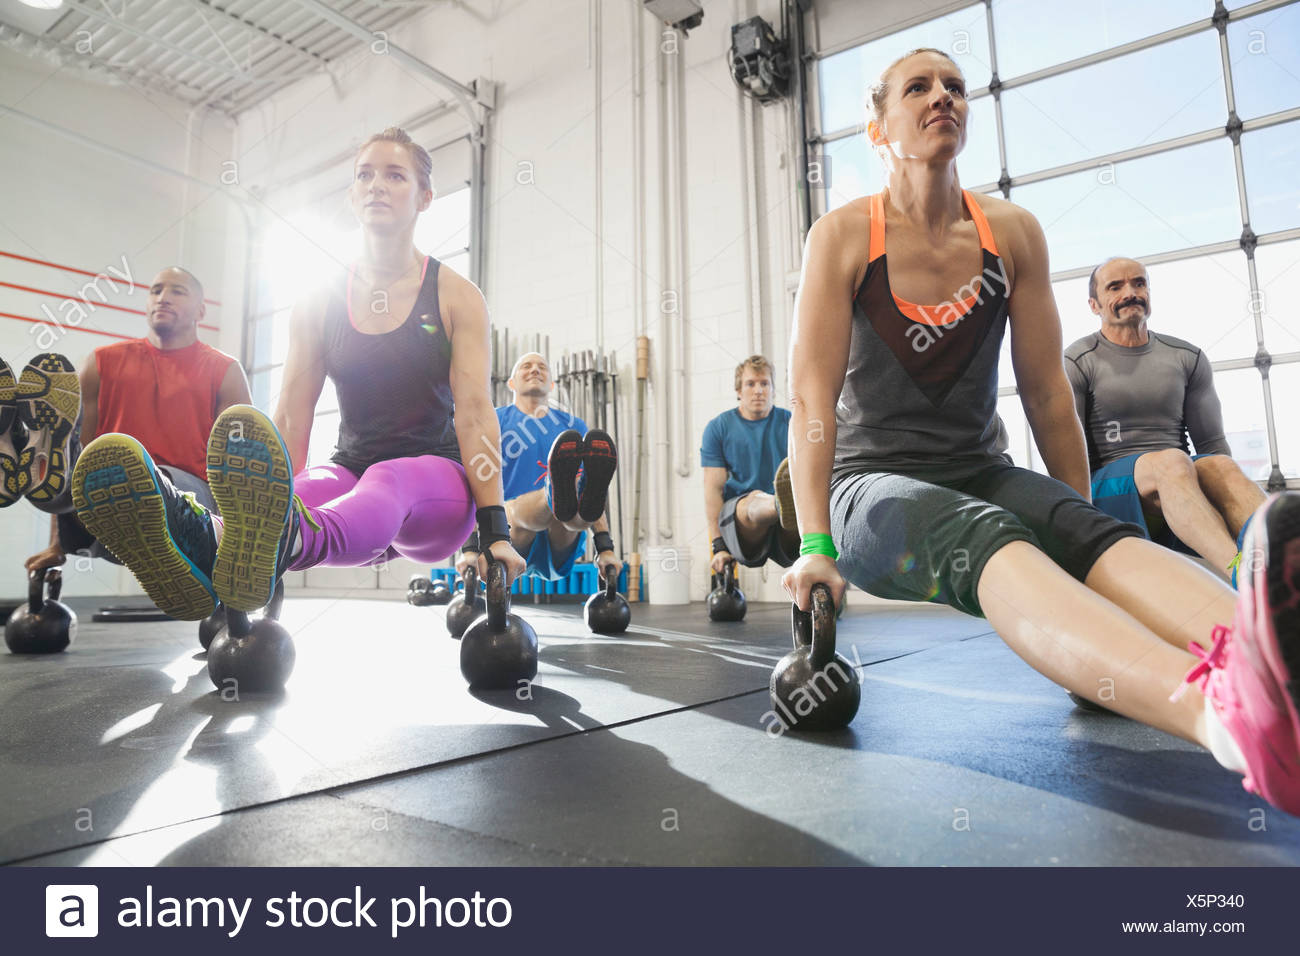 Group working out with kettlebells - Stock Image